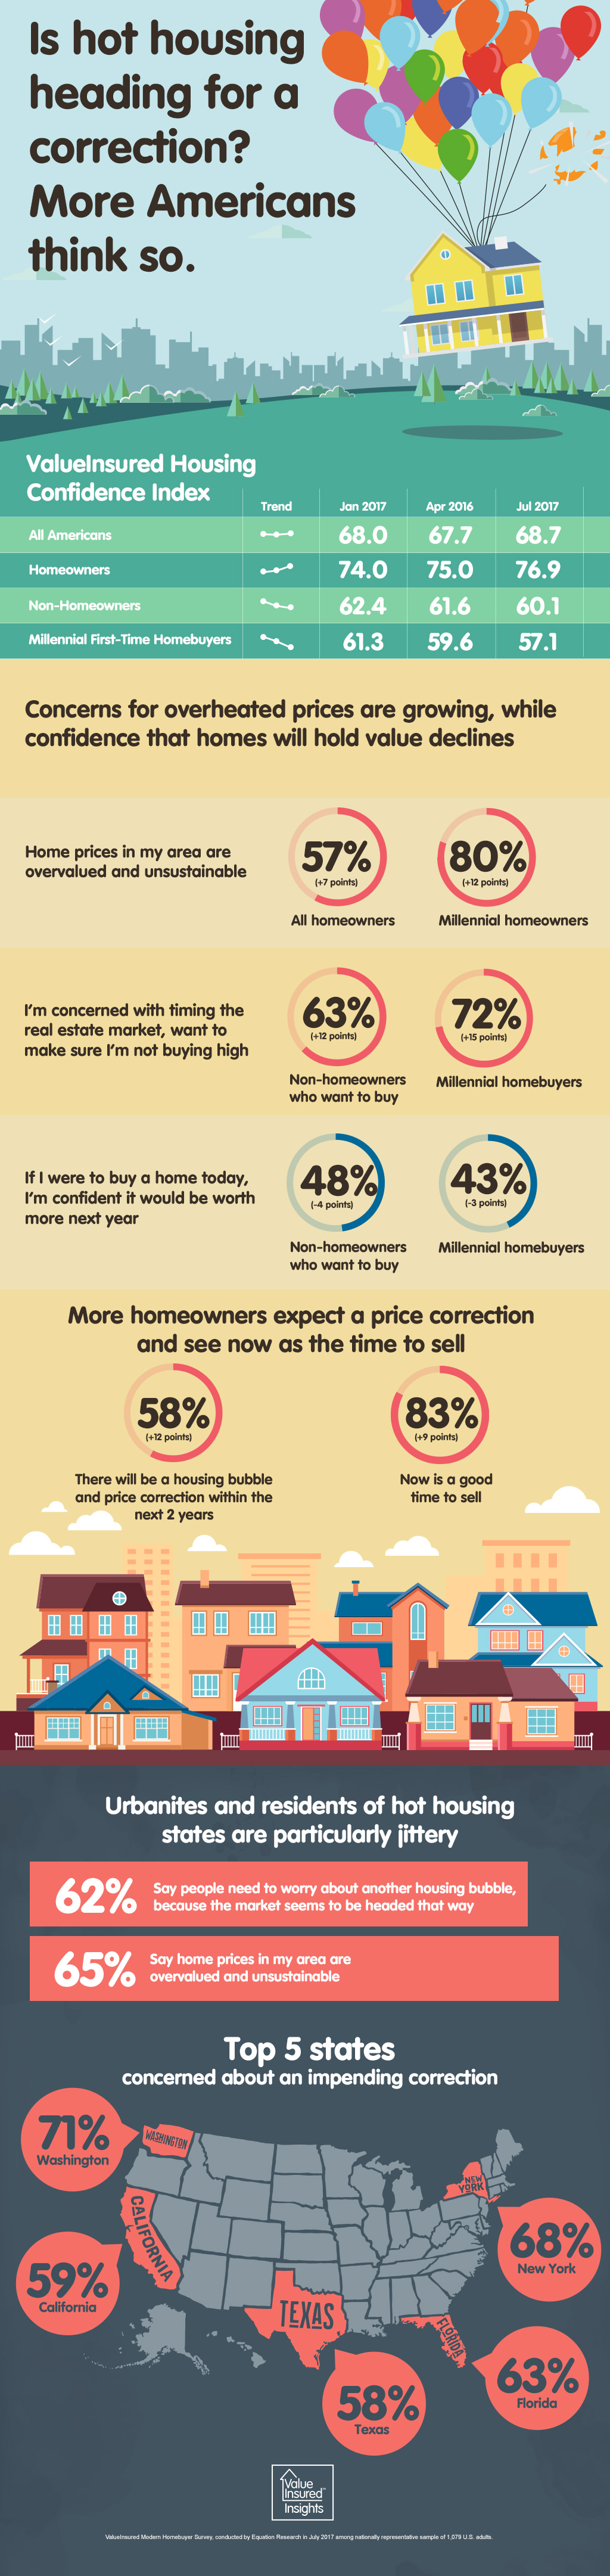 US Homebuyers concerned about housing correction